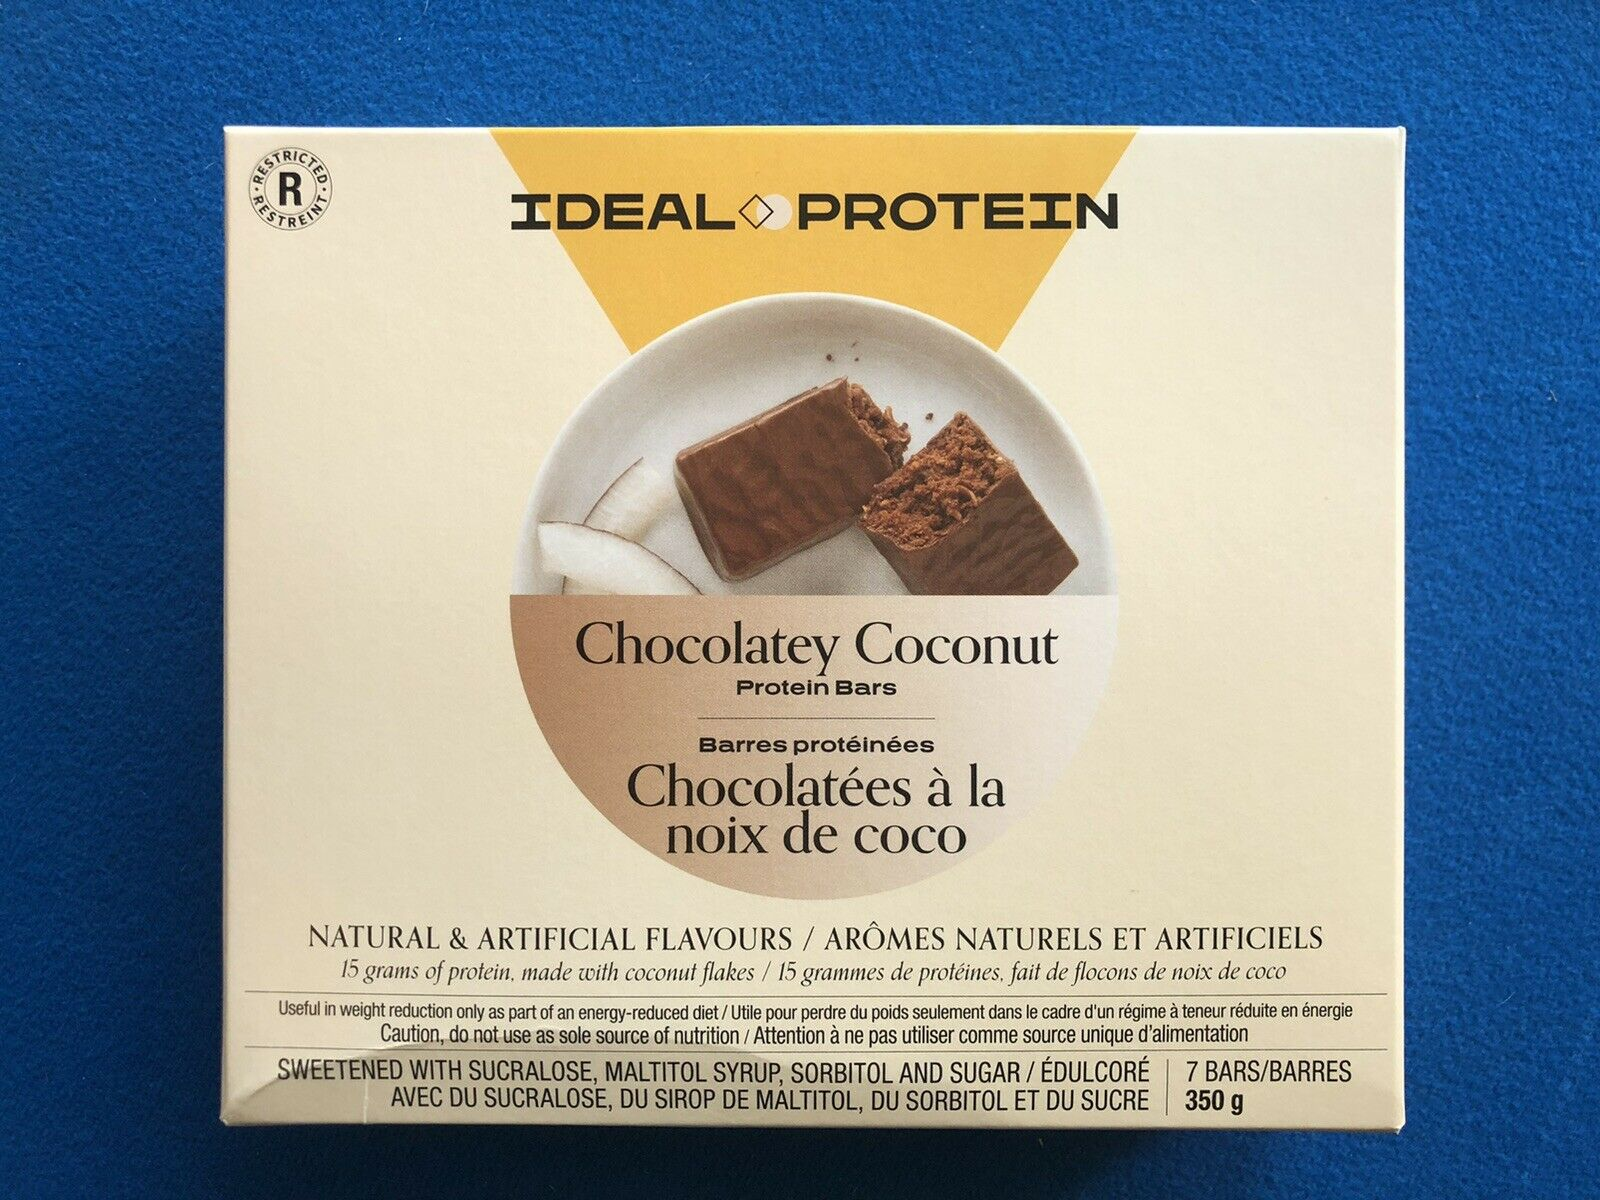 Ideal Protein Chocolatey Coconut Protein Bars - 7 Bars - EXP 12/31/21  FREE SHIP